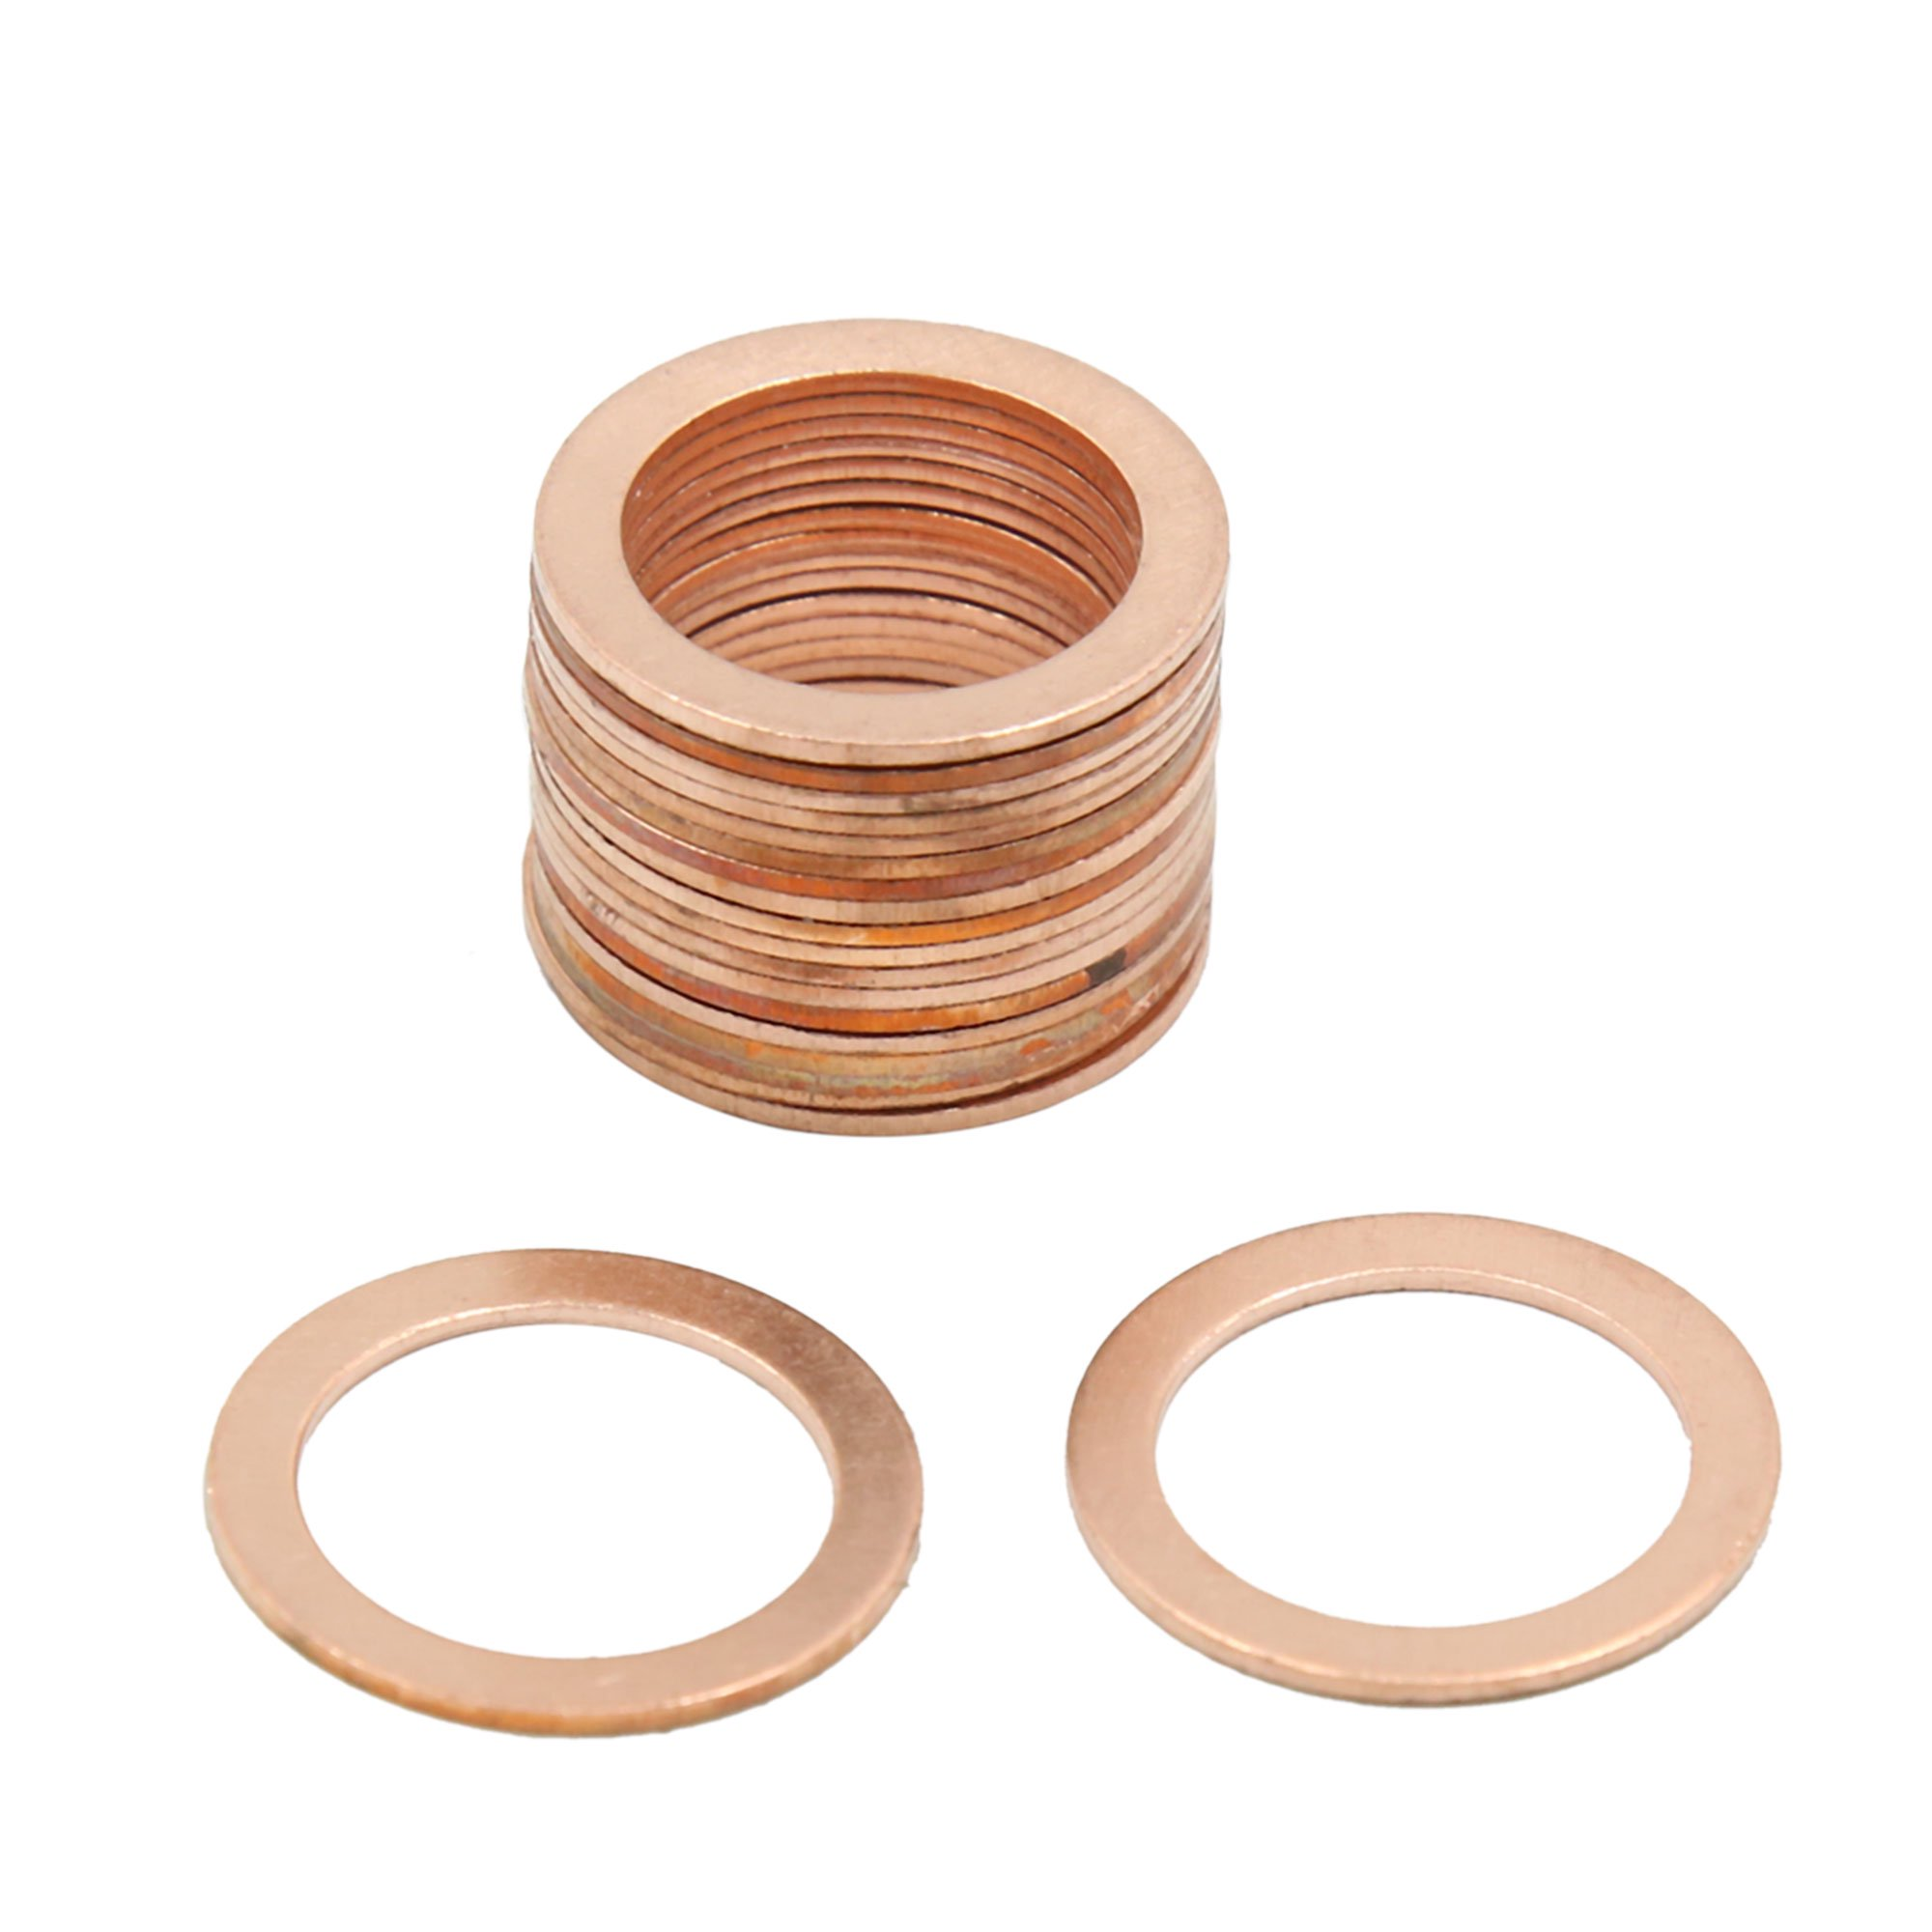 18mm Inner Dia Copper Crush Washers Flat Sealing Gaskets